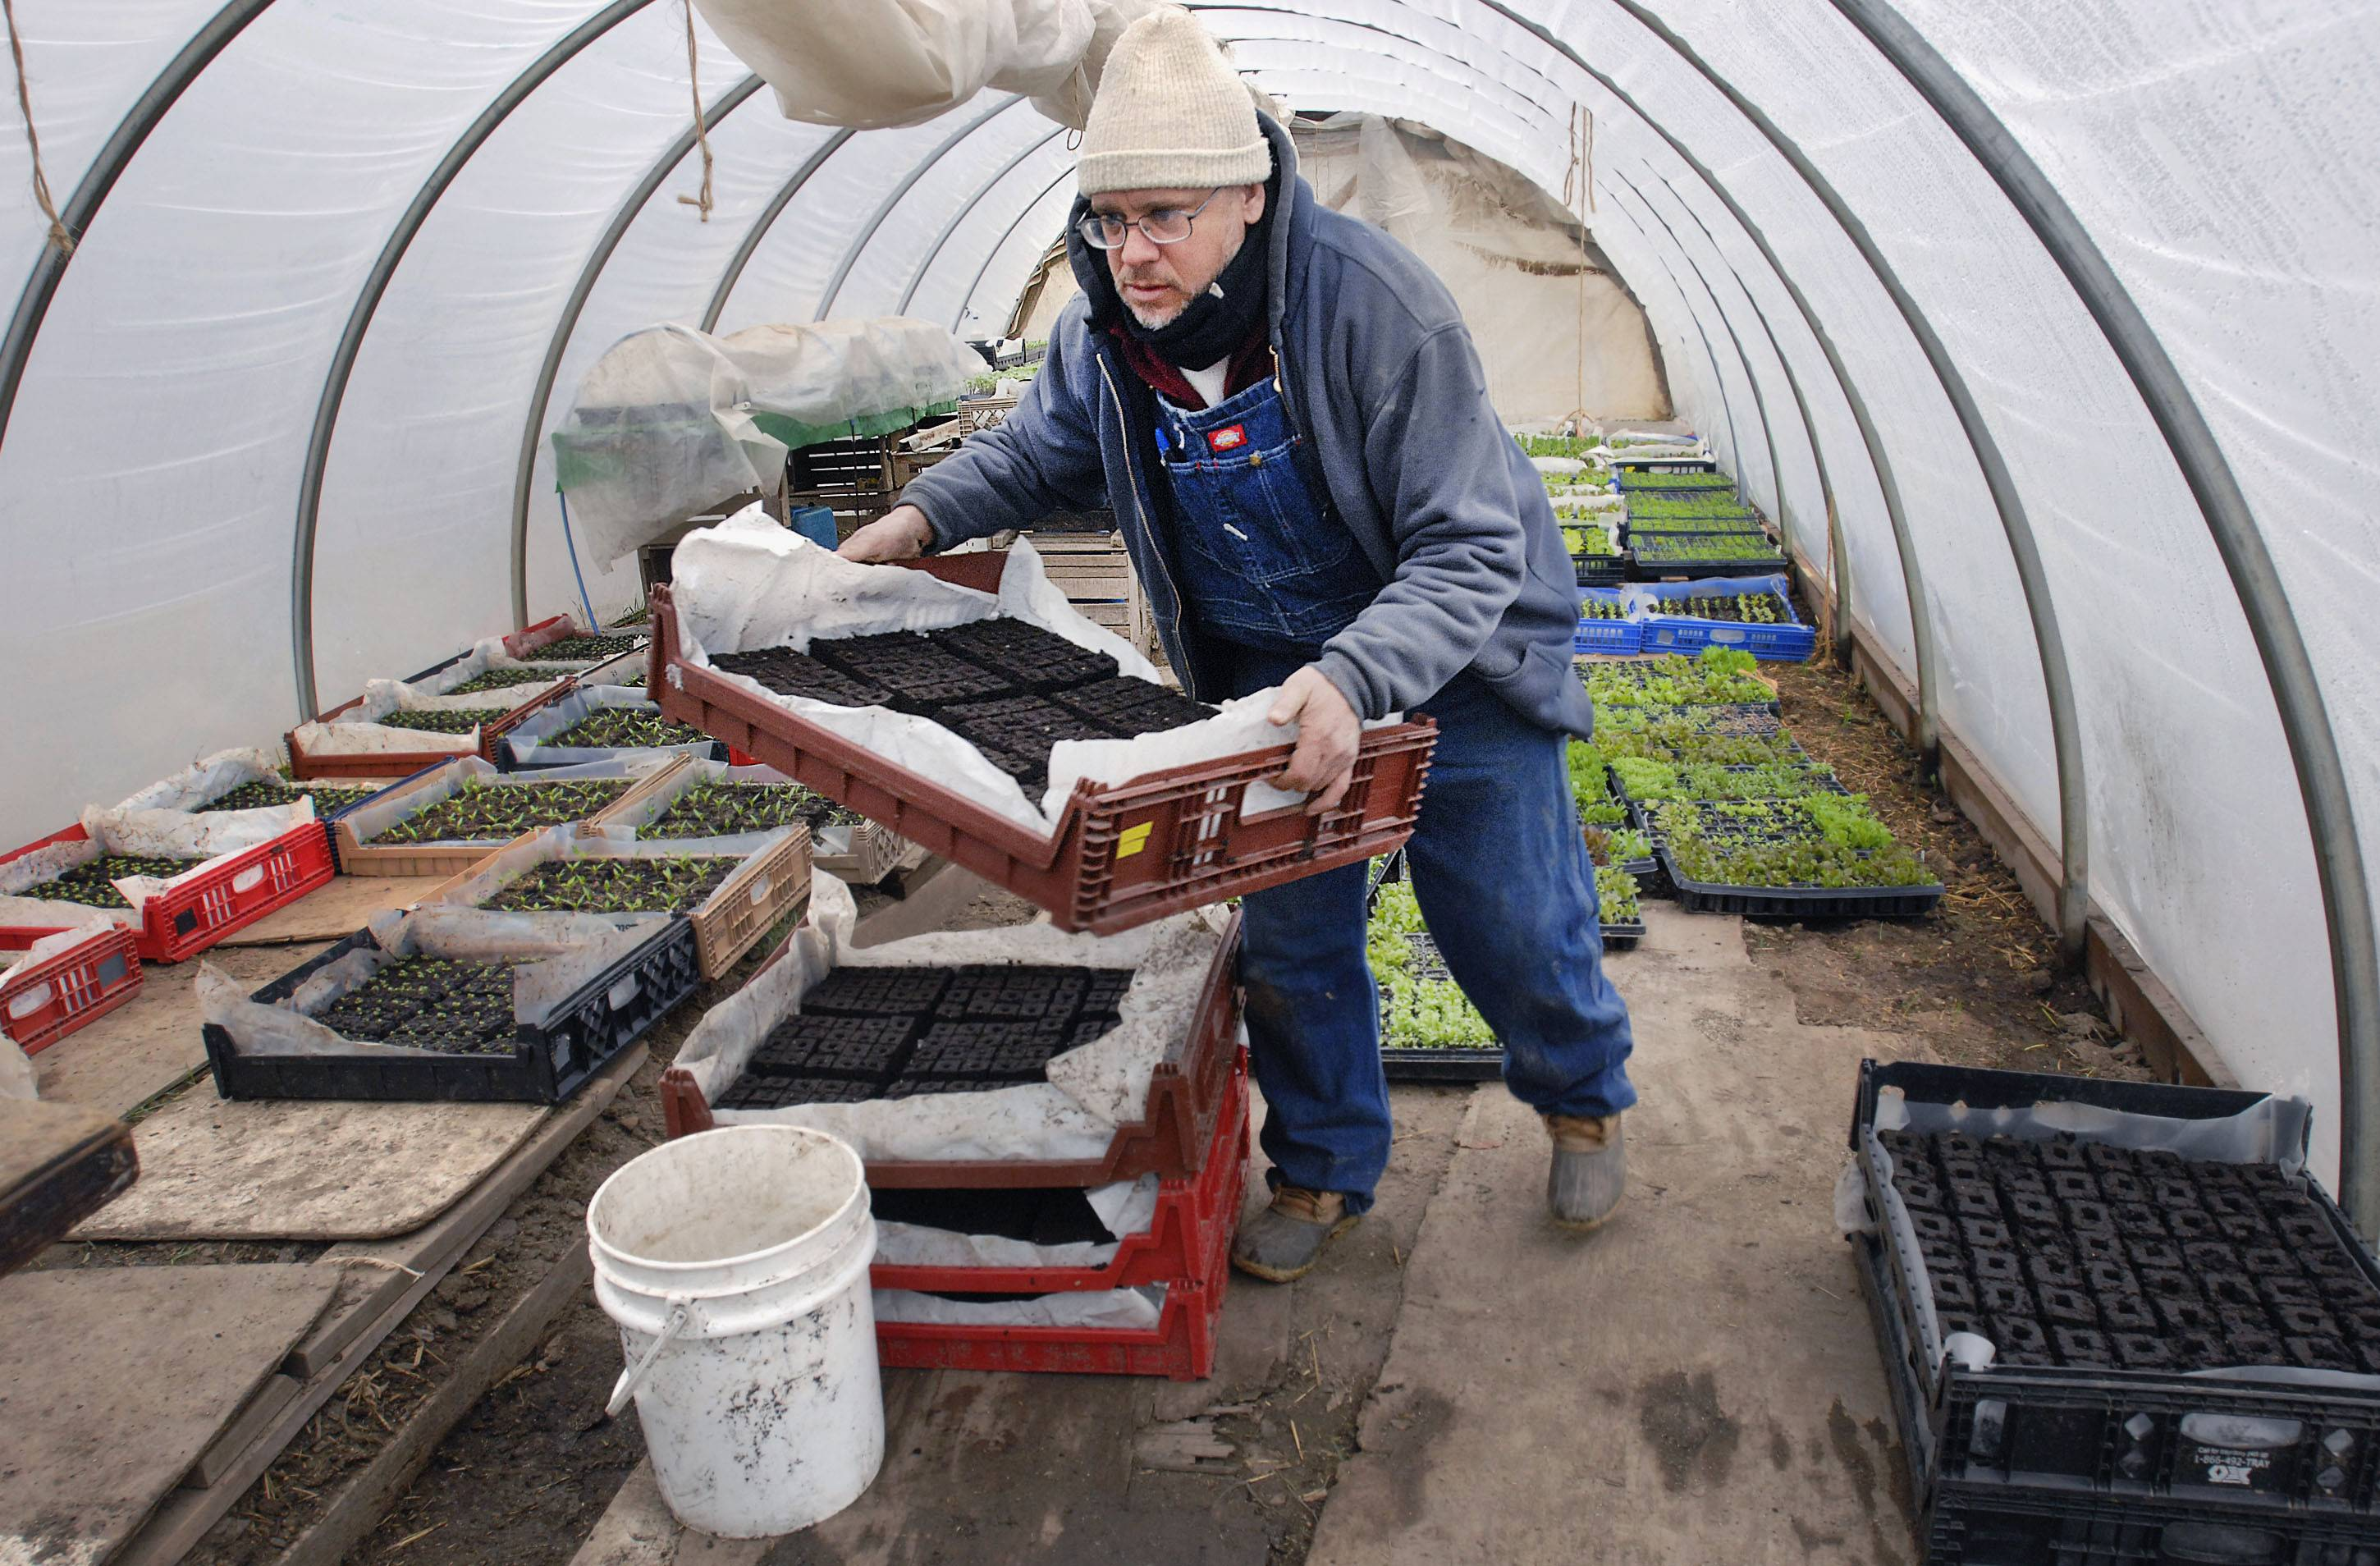 Henry Brockman prepares to transfer shiso seedlings into growth medium while working in his greenhouse near Congerville.